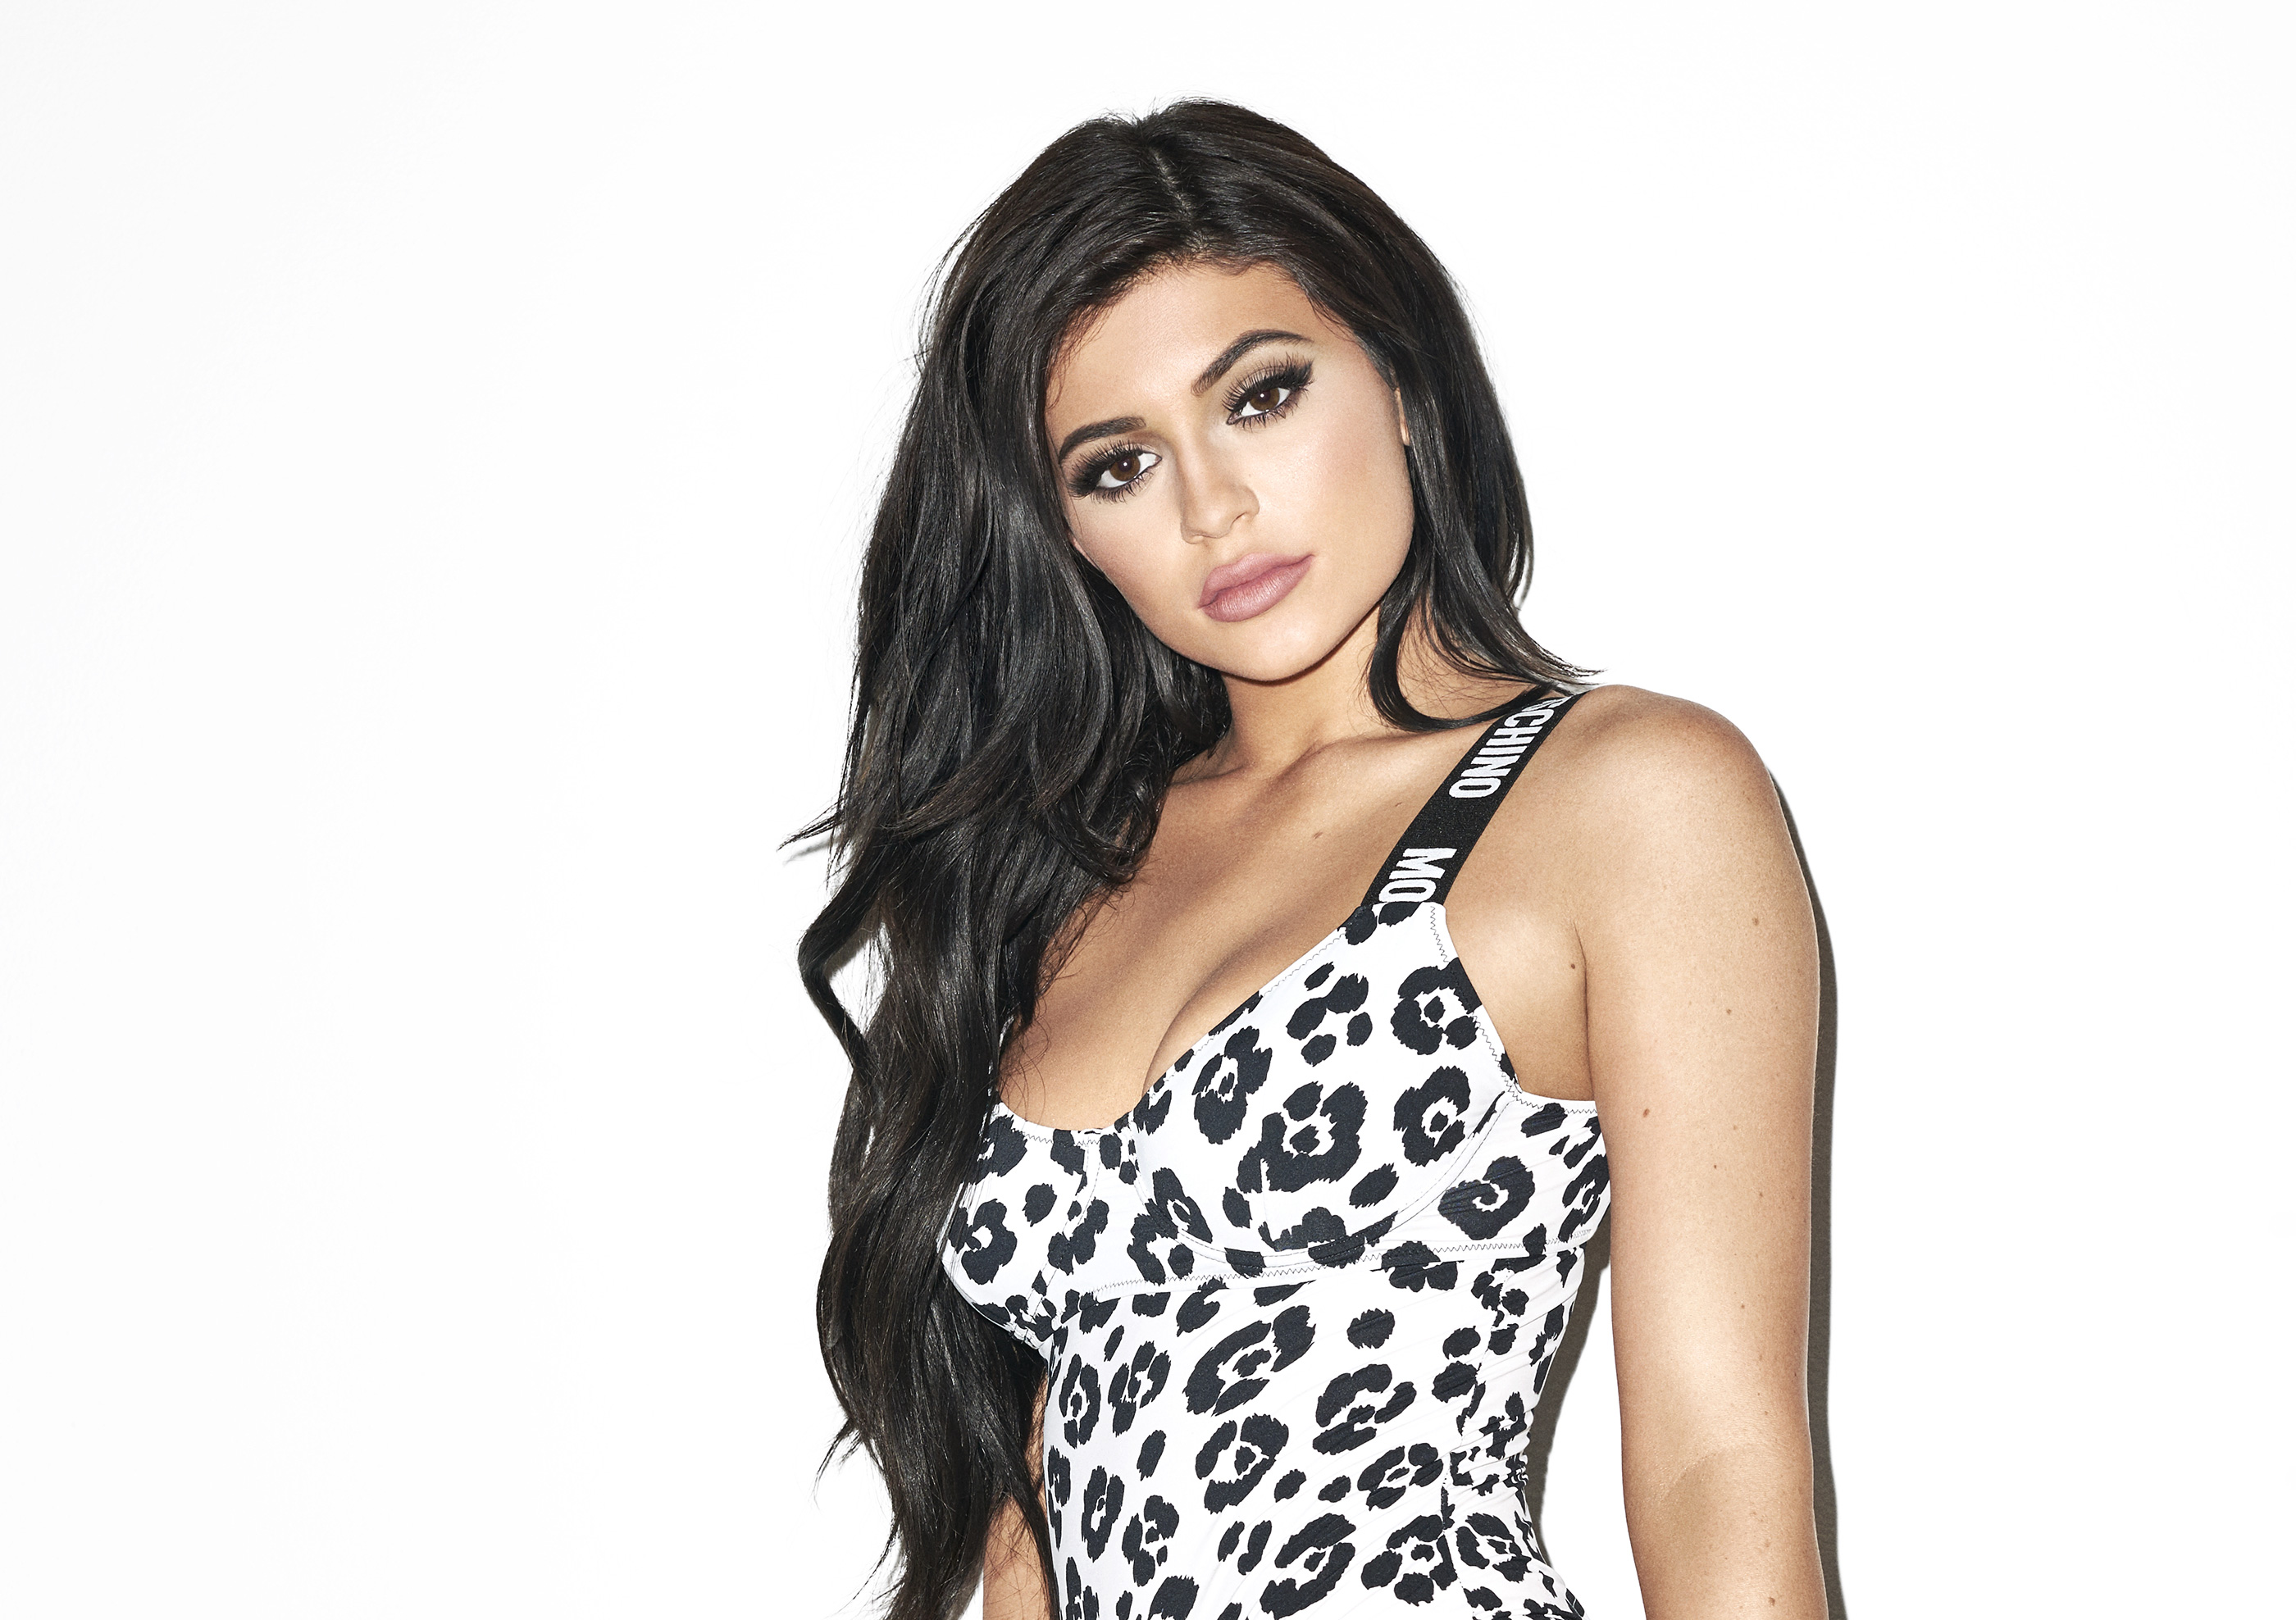 Kylie Jenner Wallpapers: 2048x1152 Kylie Jenner Galore Magazine 2017 2048x1152